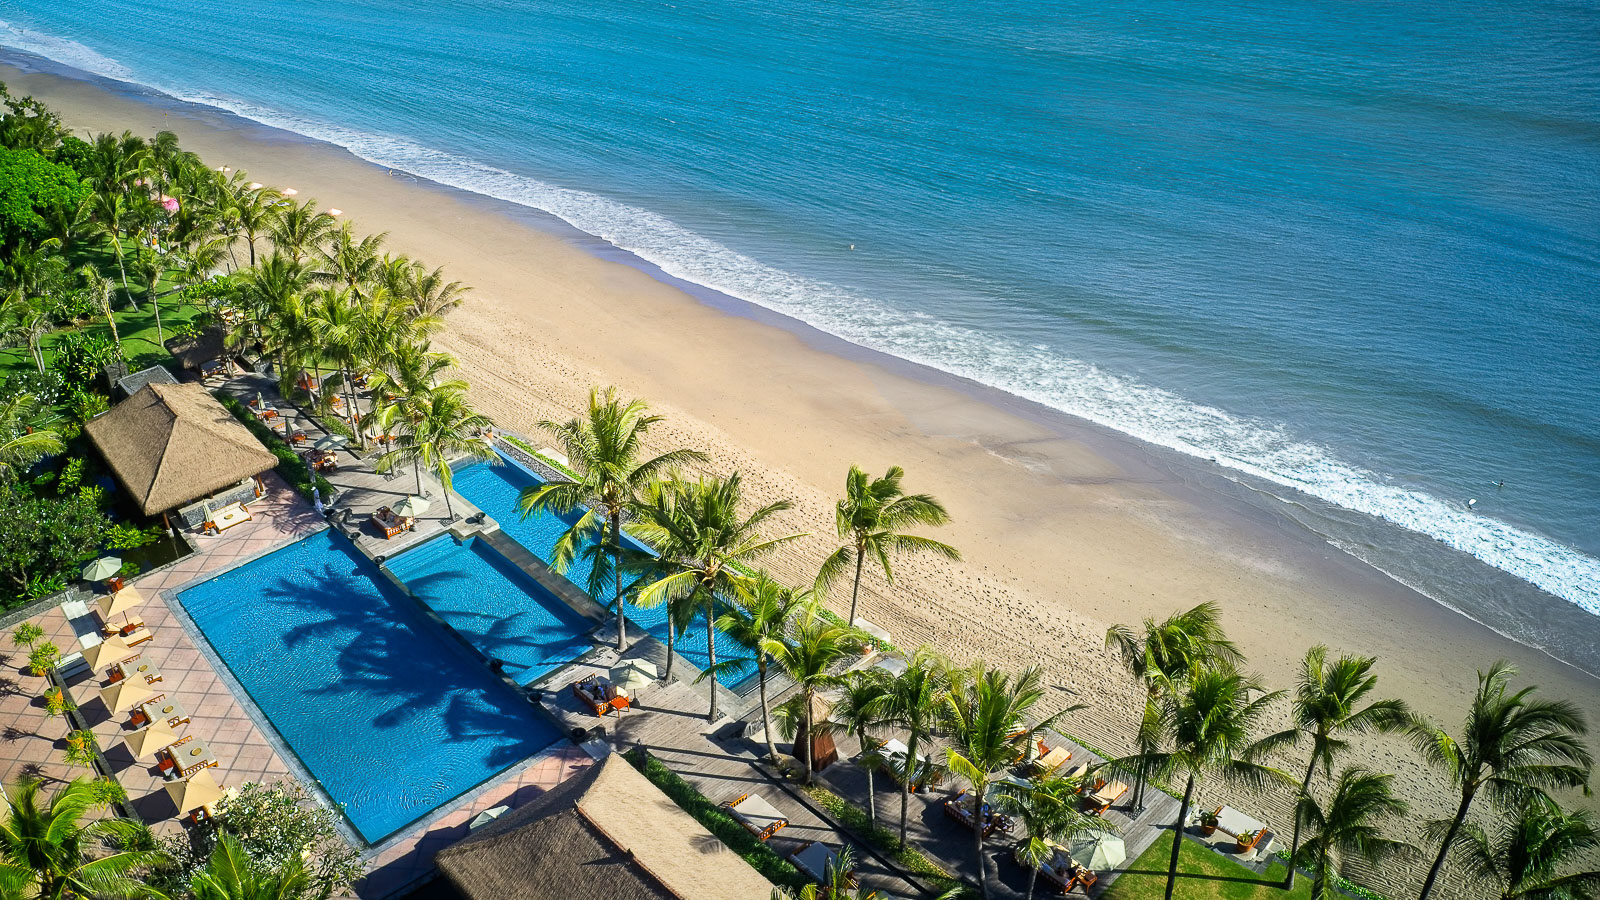 Plan Ahead for your next Bali Break